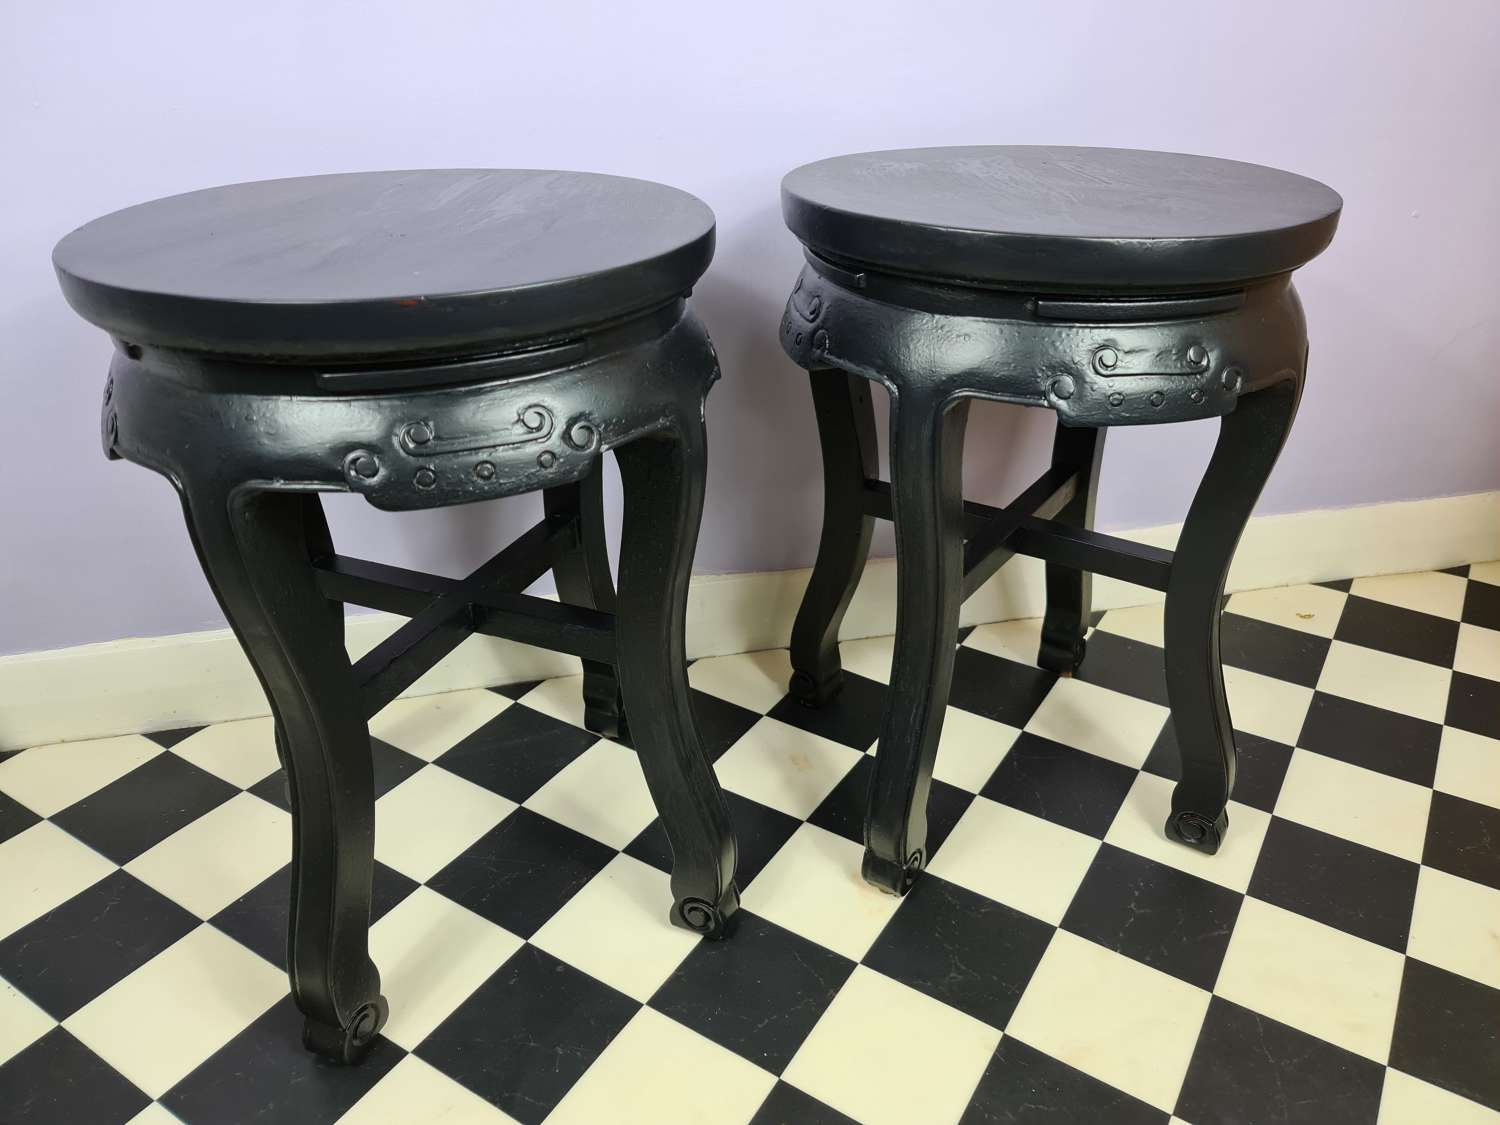 A Pair of 20th Century Chinese Jardiniere or Vase Stands